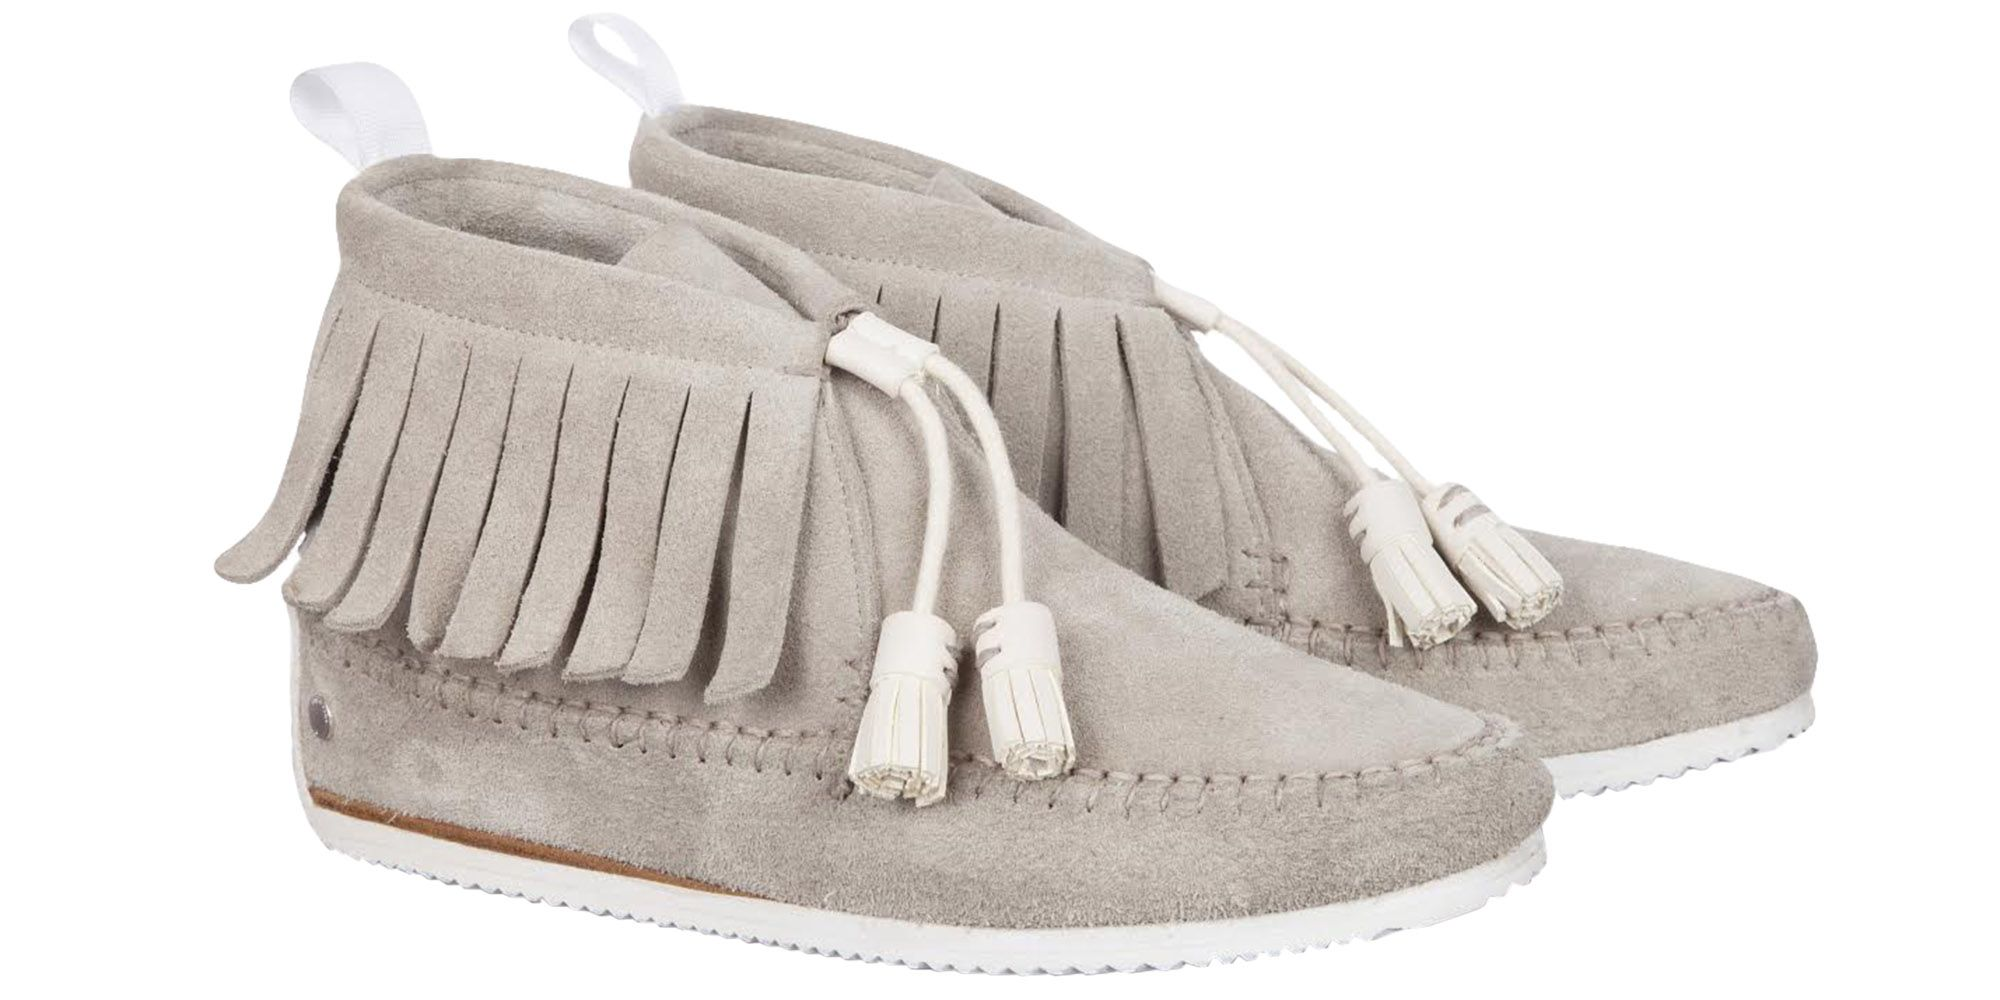 Https Beauty Makeup Advice A7987 Flash  Olivia Sneakers Ivory 38 1428443216 Hbz Were Obsessed Rag Bone Index